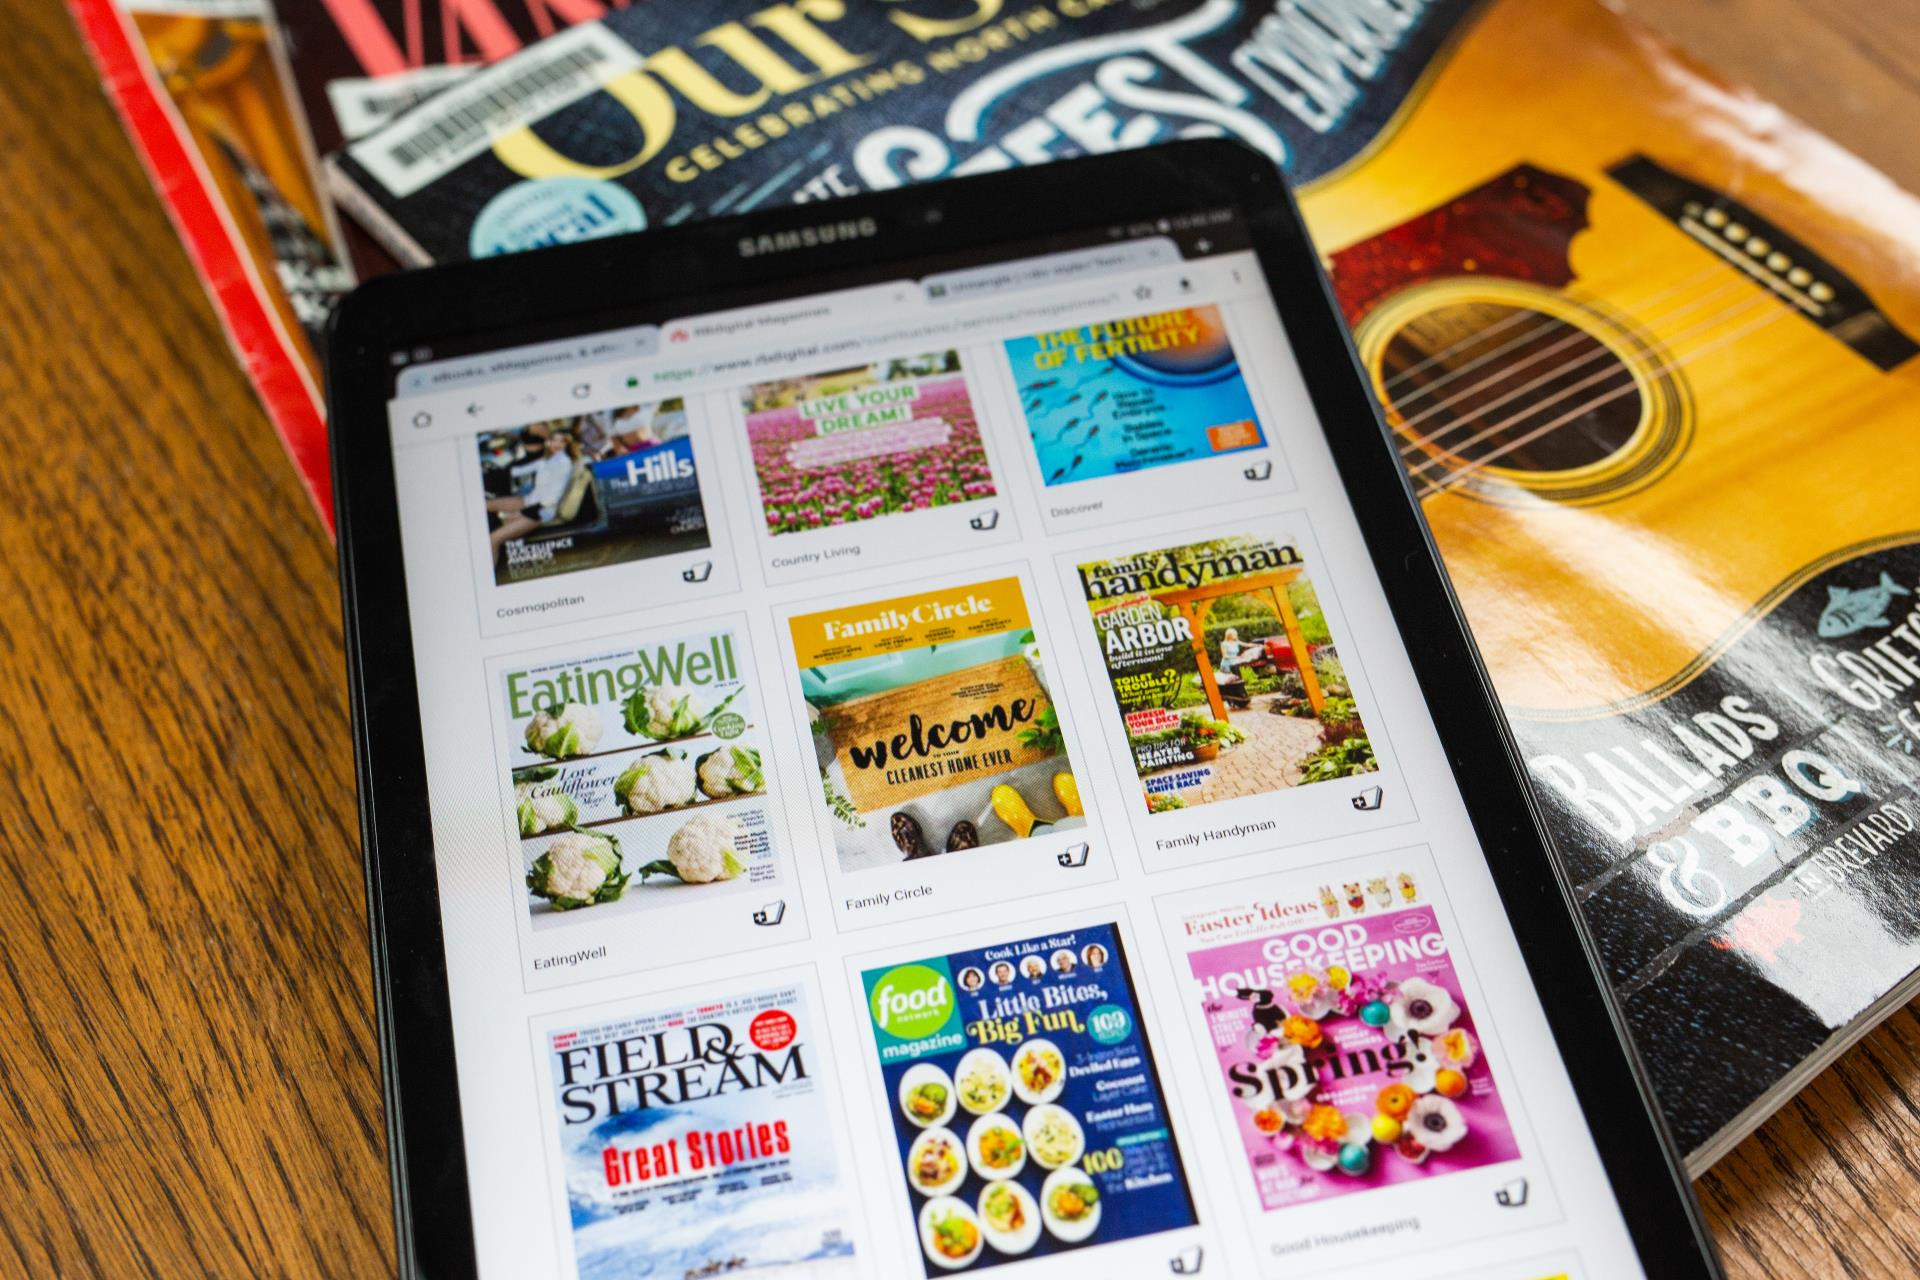 Ipad with Emagazines